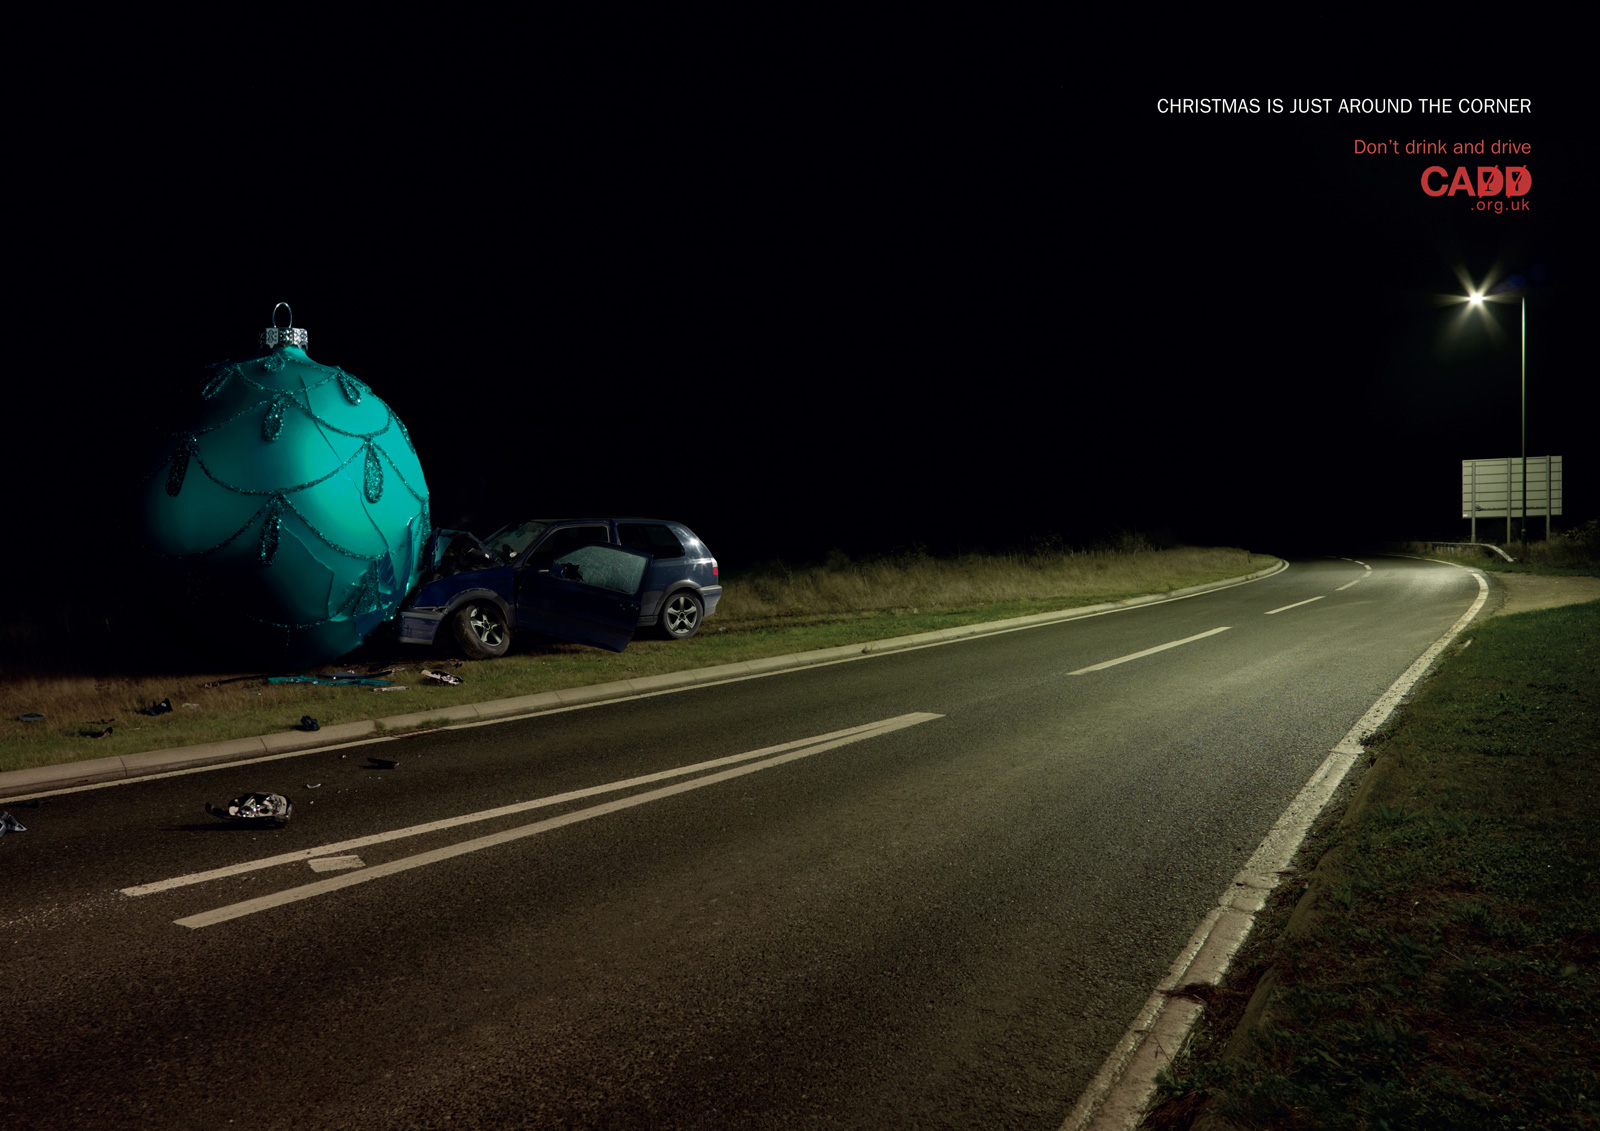 Campaign-Against-Drinking-and-Driving-(CADD)-Bauble-justcreativeads ...